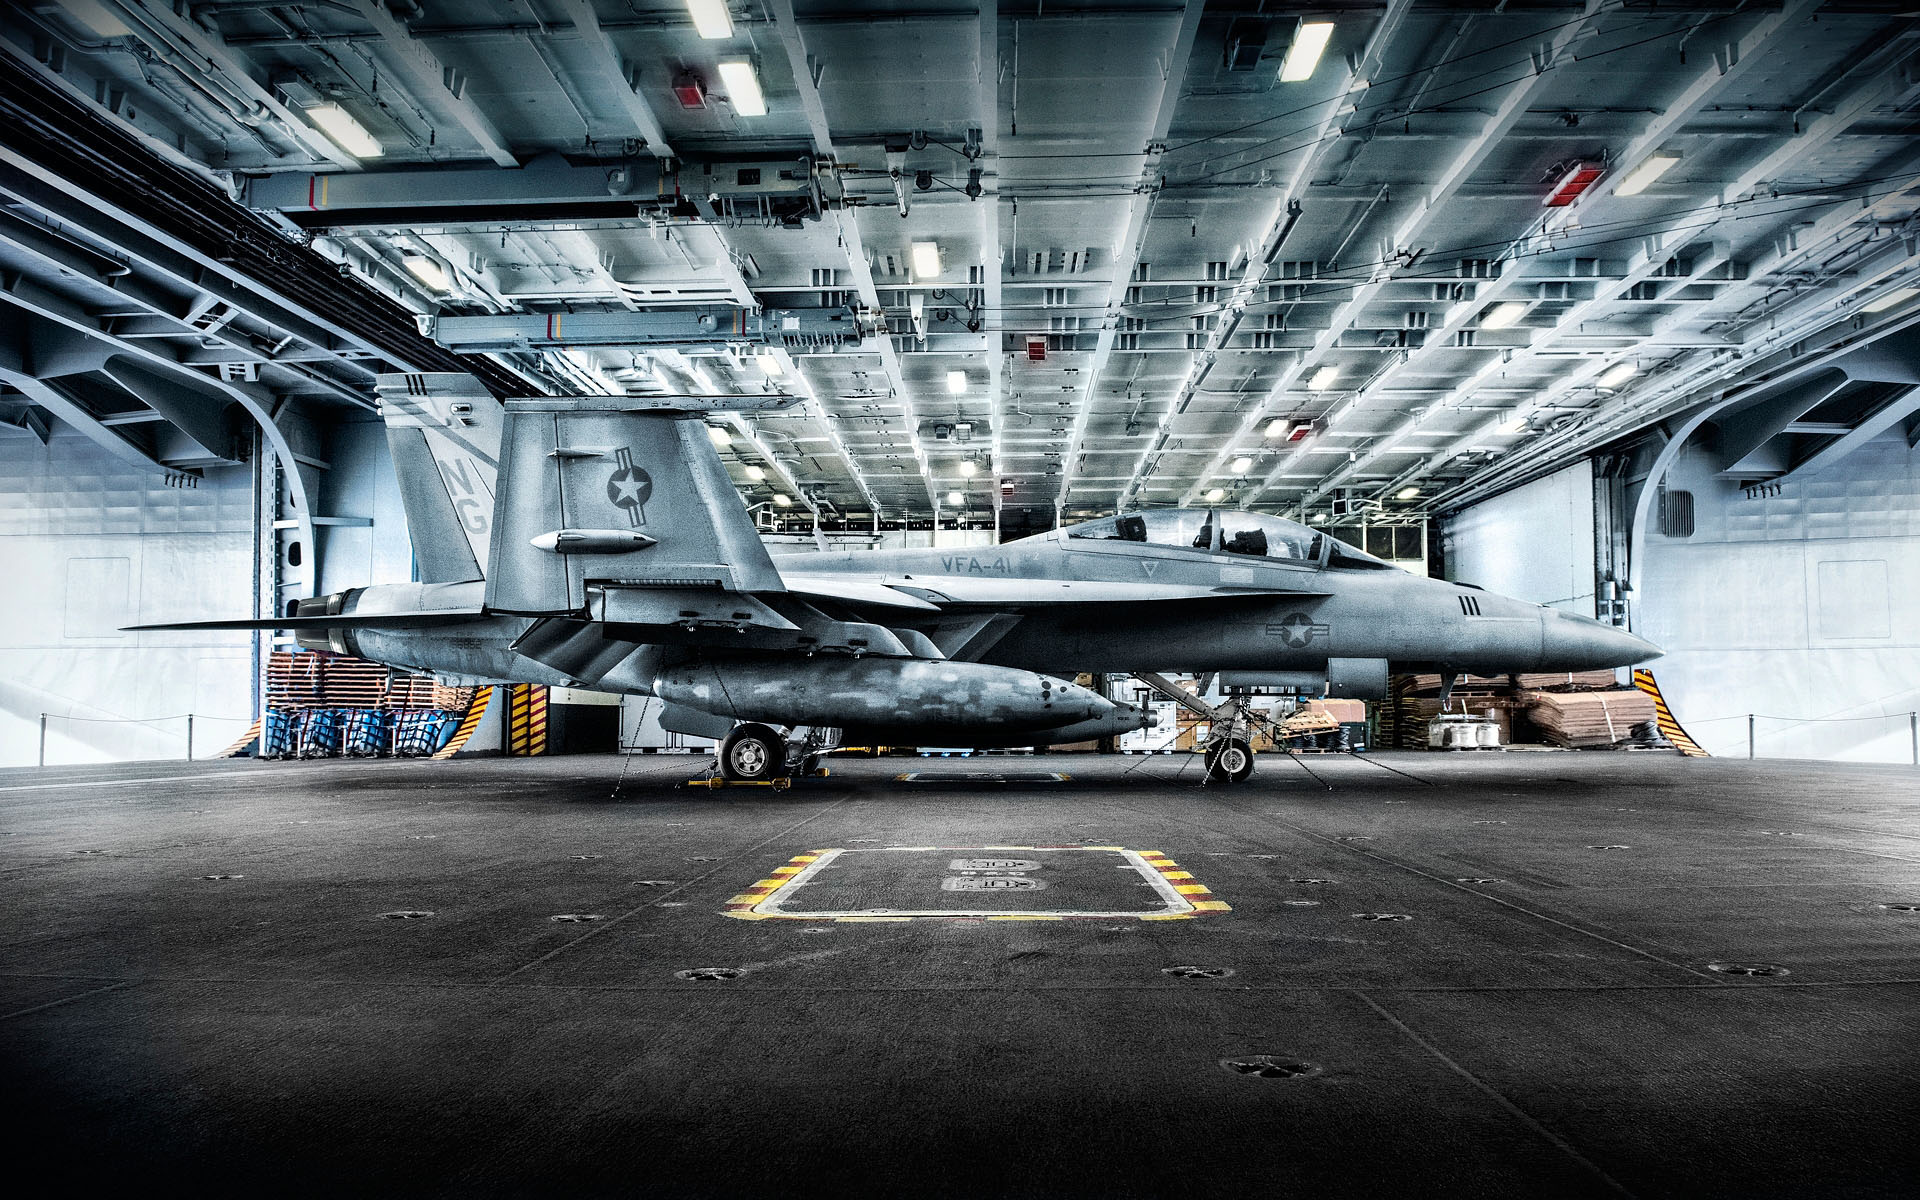 Aircraft Carrier F18 Editorial photography